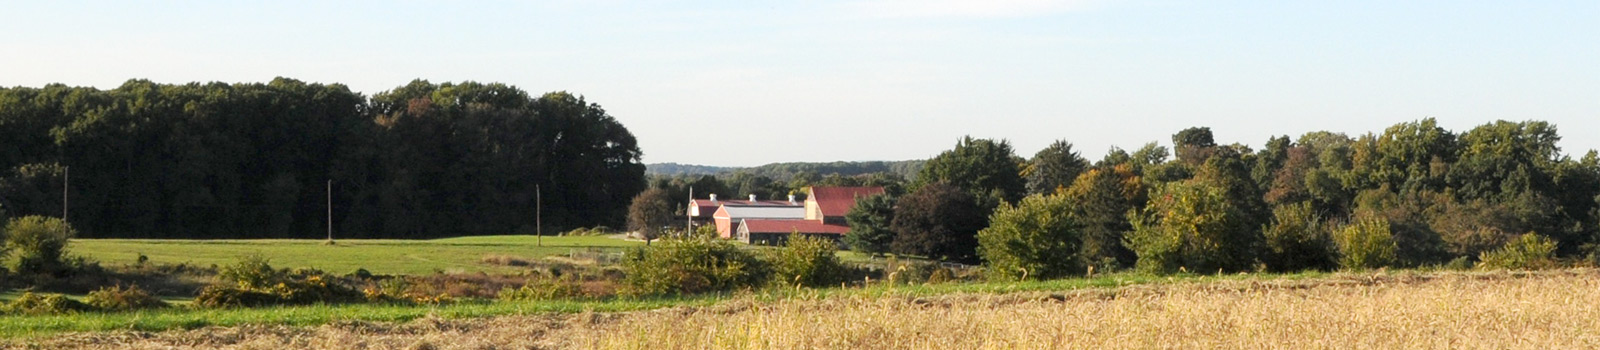 Brightside Farm, part of the Charlestown Township Parks System